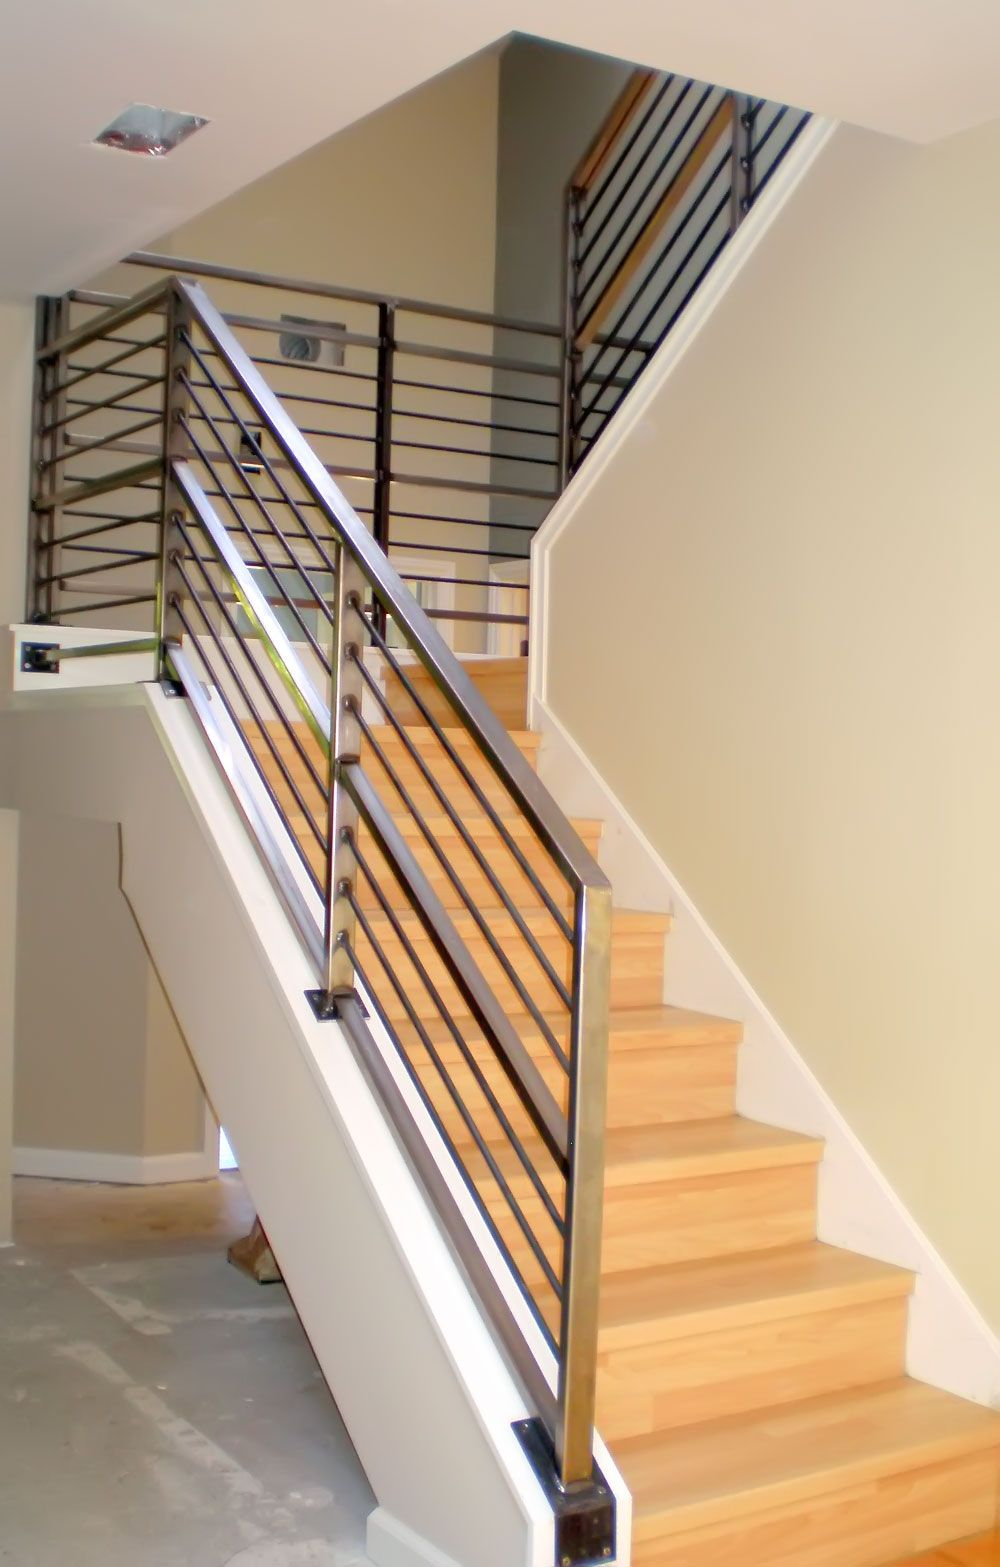 Attractive Modern Neutral Wooden Staircase With Minimalist Steel Railing .